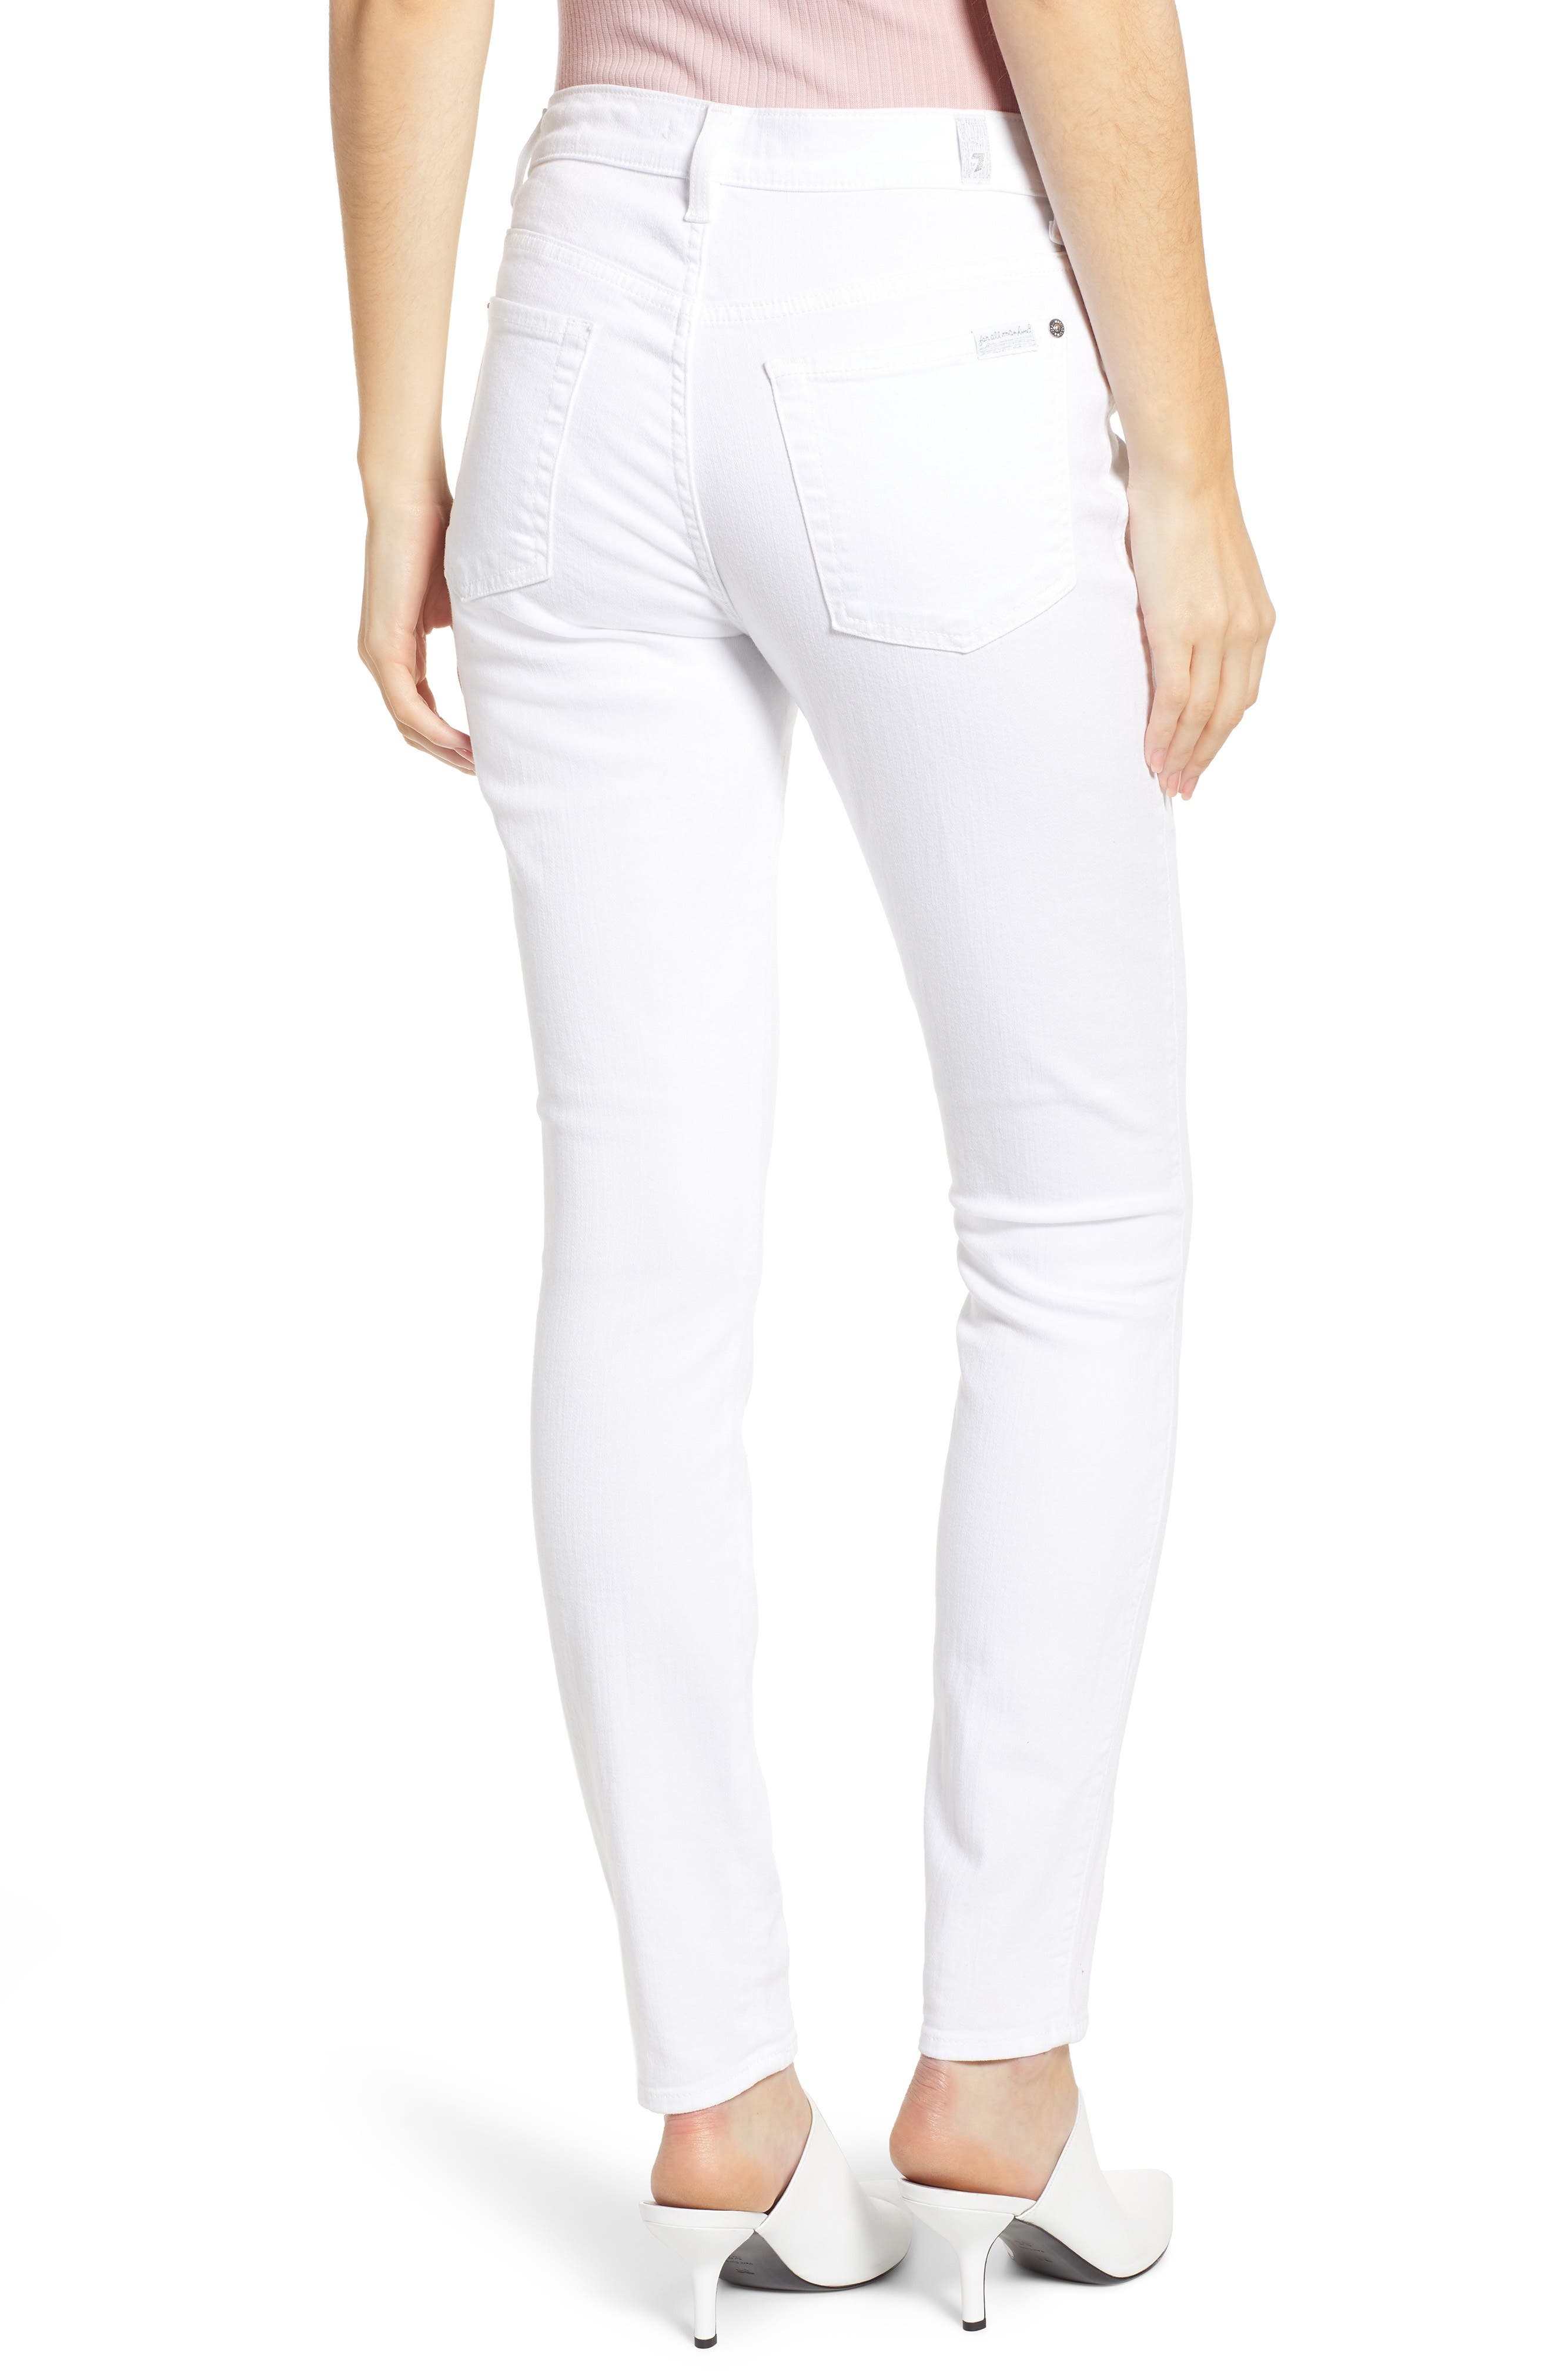 7 FOR ALL MANKIND<SUP>®</SUP>, Button Fly High Waist Ankle Skinny Jeans, Alternate thumbnail 2, color, WHITE RUNWAY DENIM